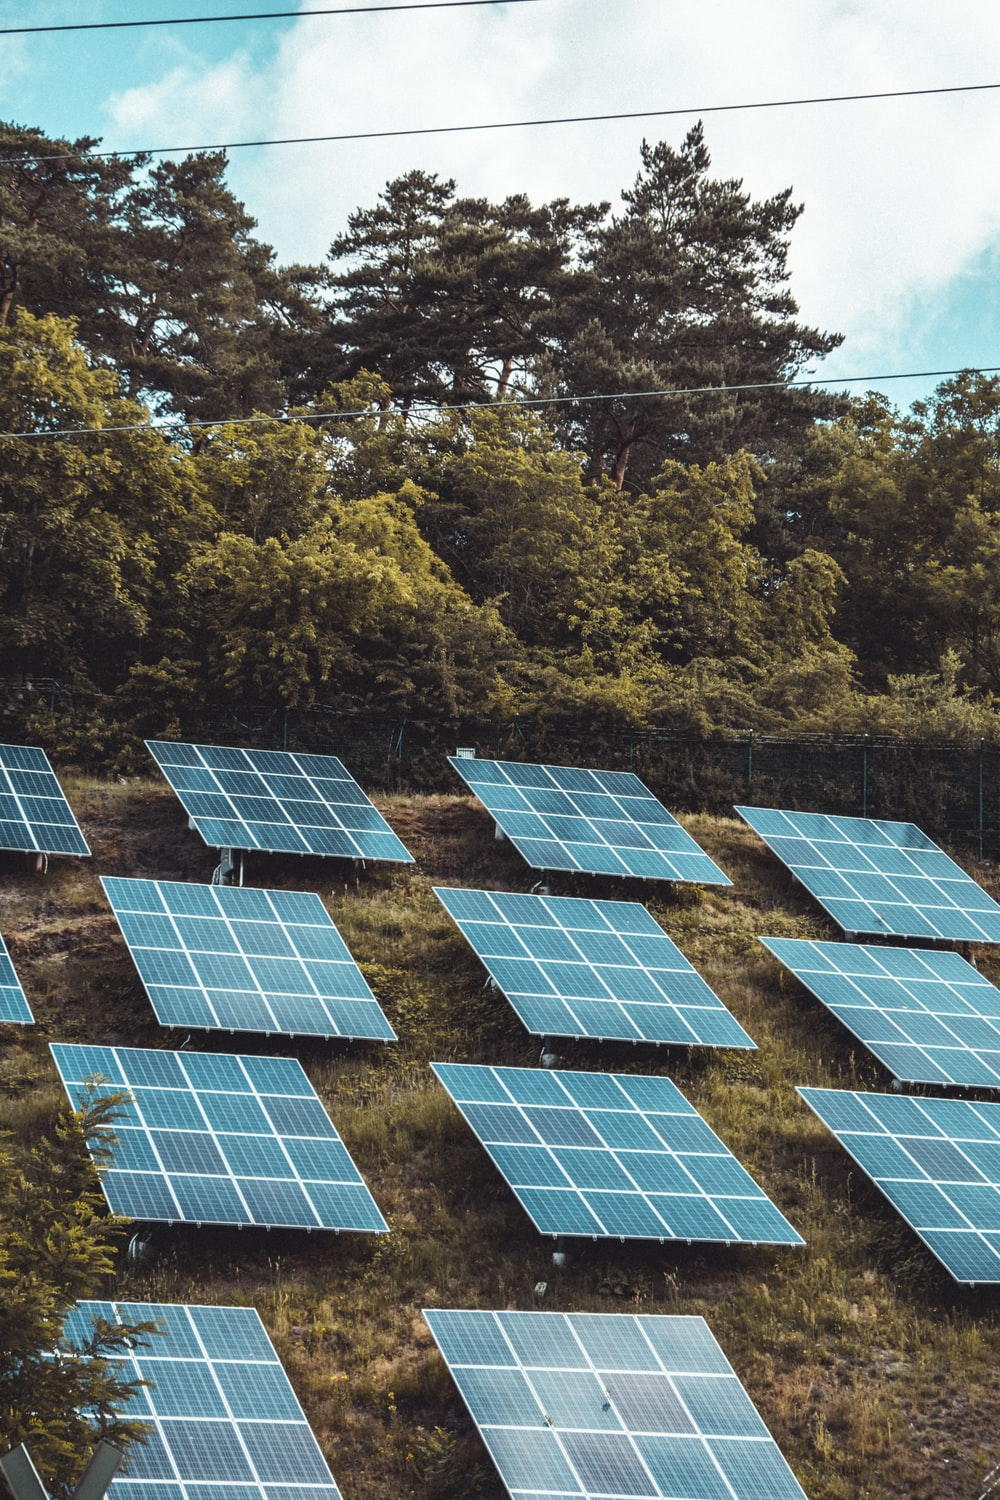 solar panels on green trees during daytime